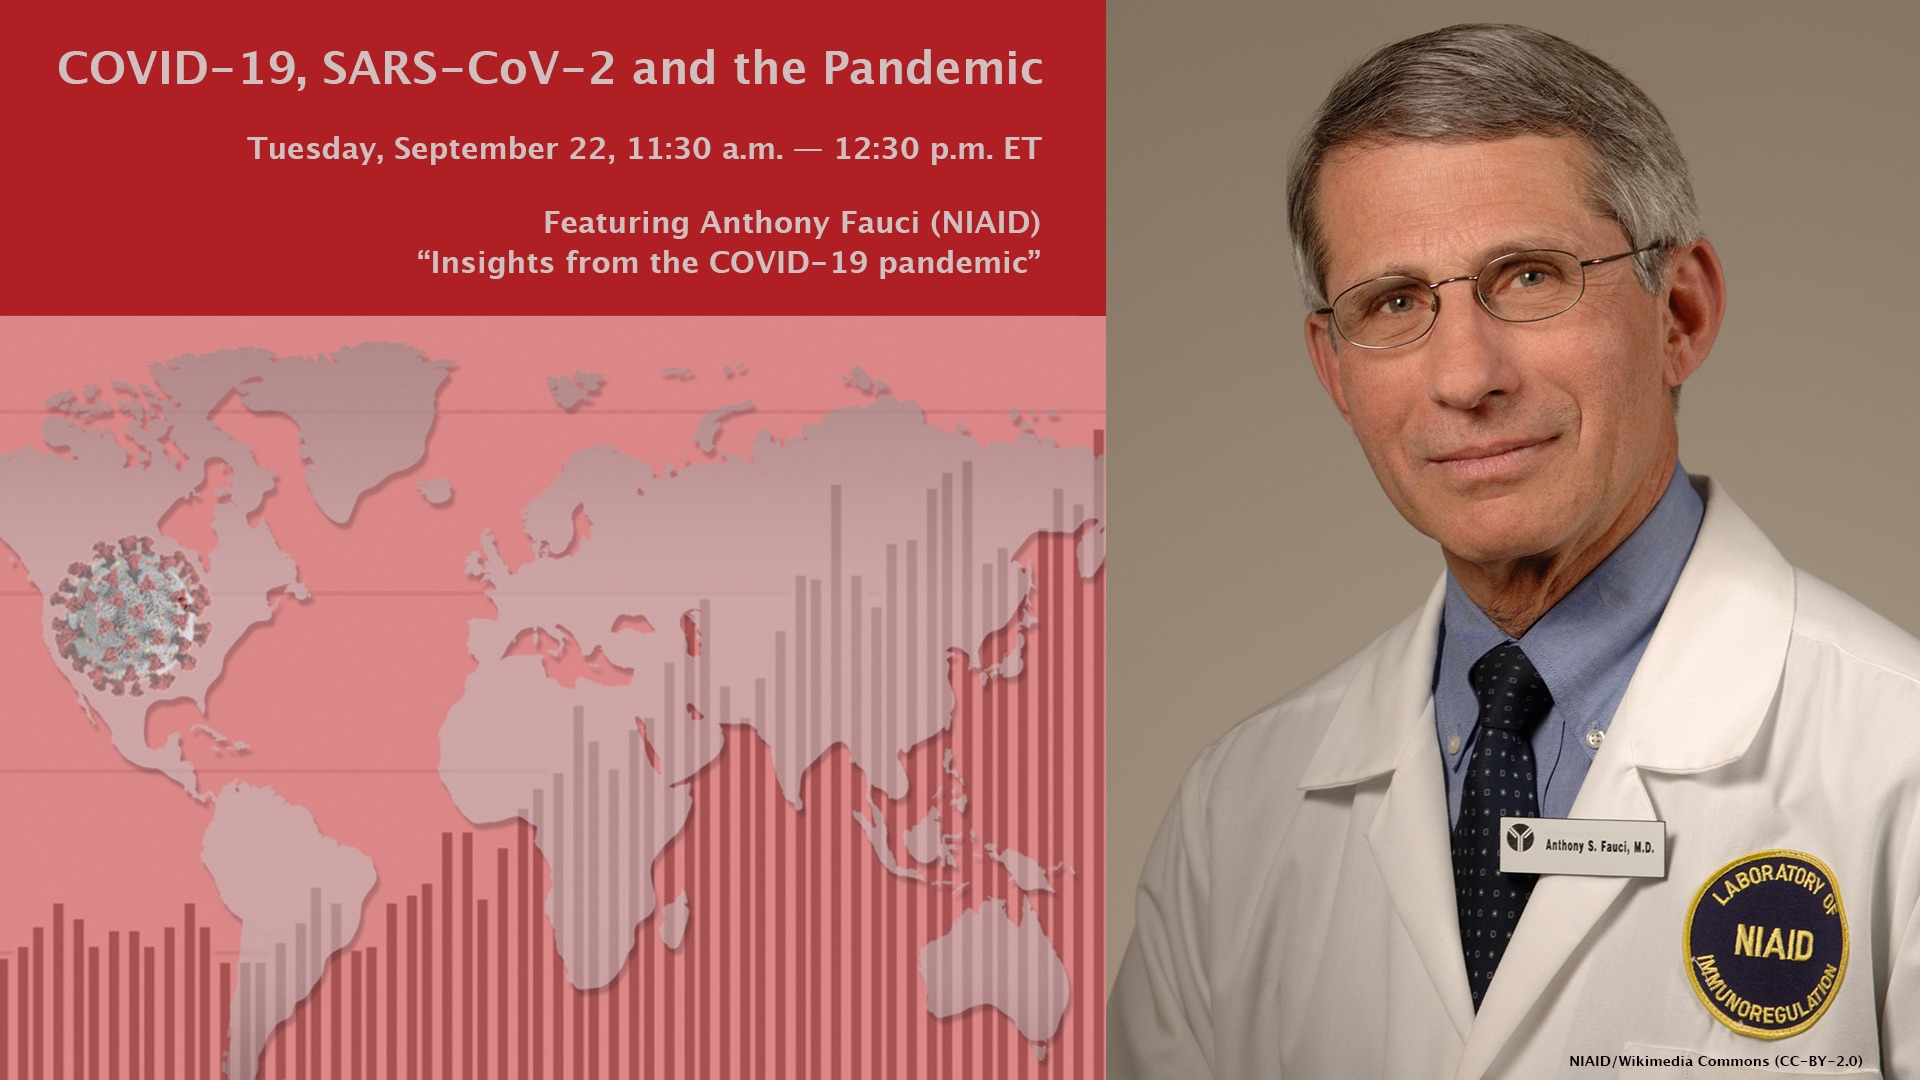 """Anthony Fauci: """"Insights from the COVID-19 pandemic"""""""